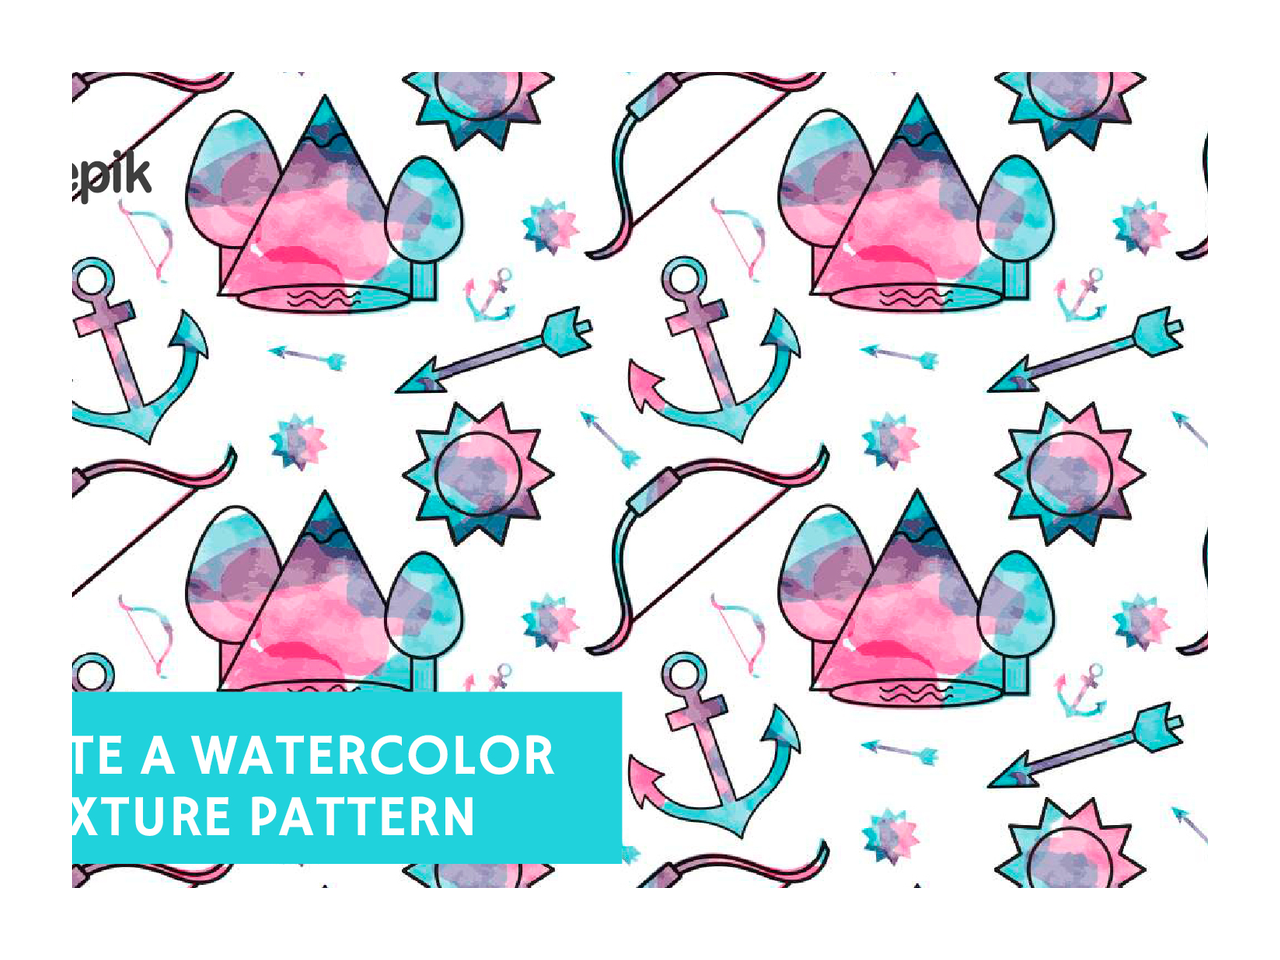 How to create a. Waves clipart watercolor